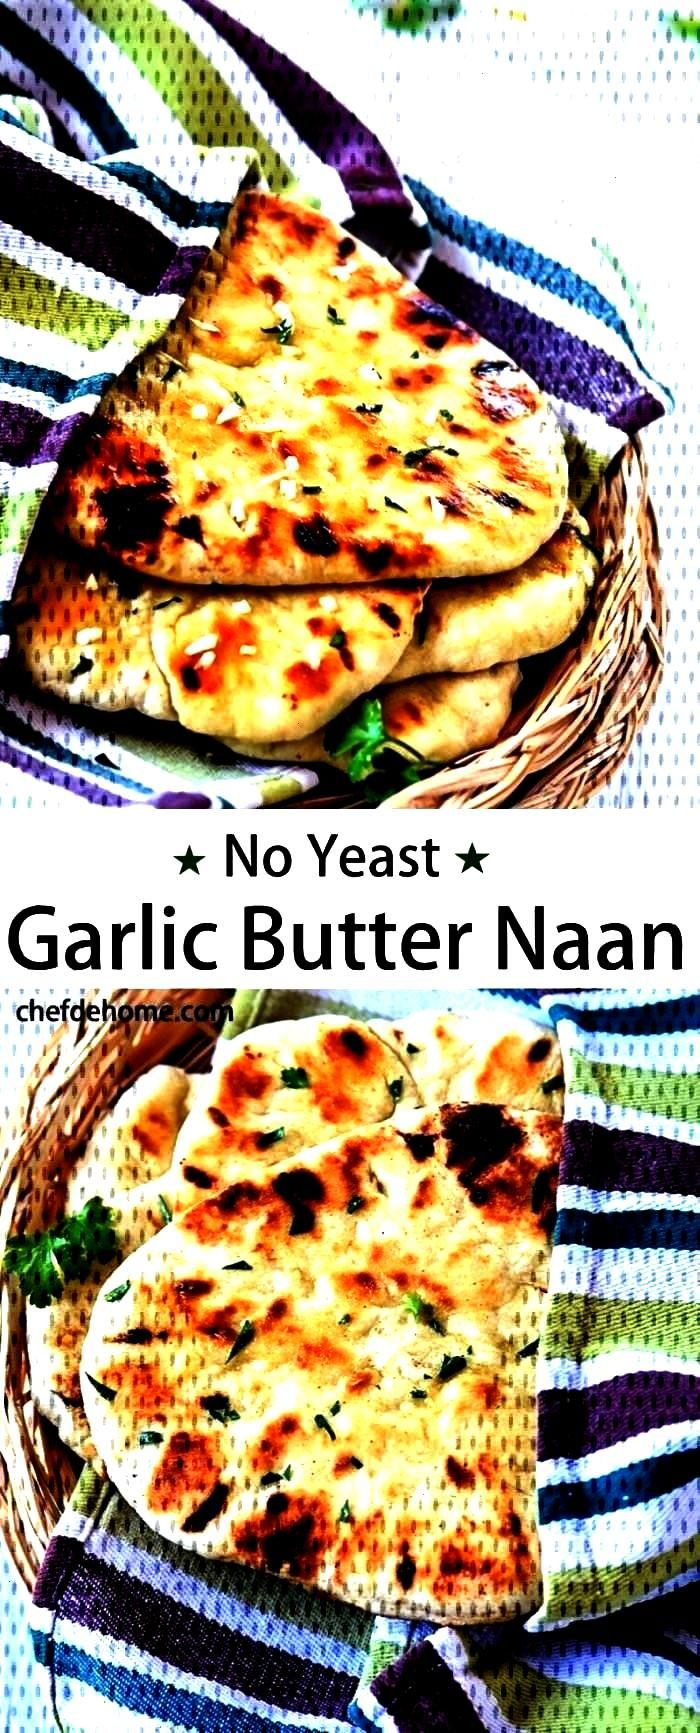 Garlic Naan Bread without...Instant Indian Garlic Naan Bread without...Indian Garlic Naan Bread wit